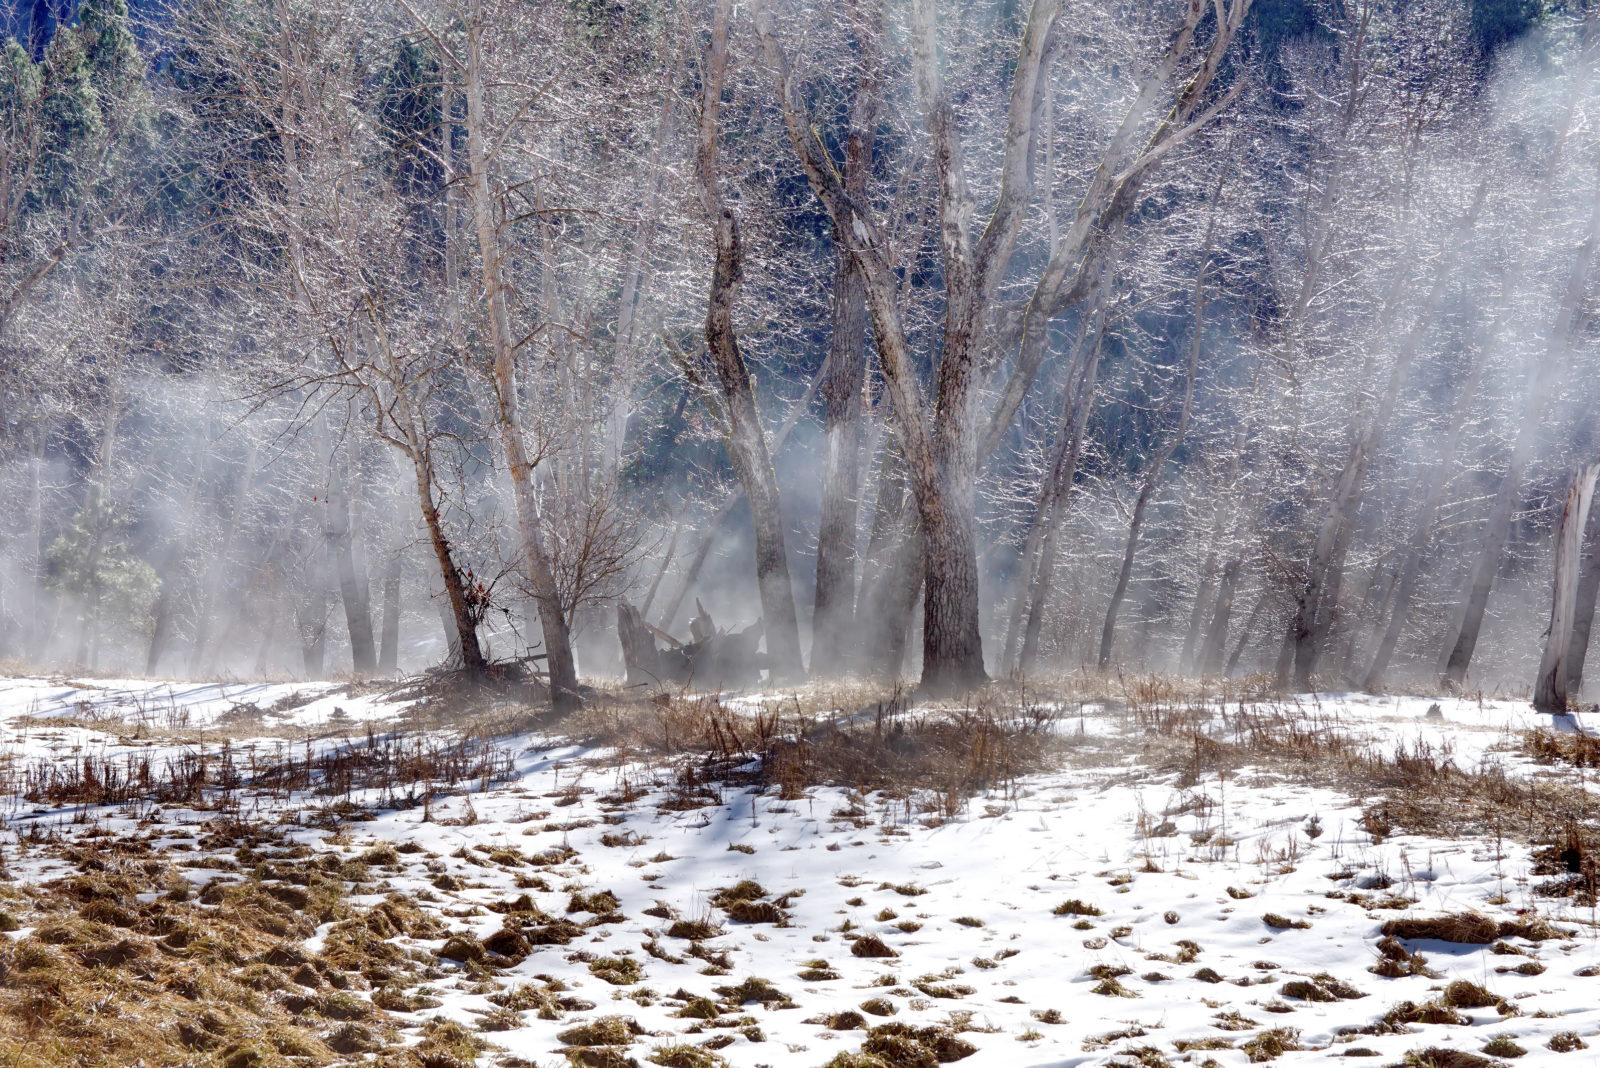 Snow, Mist, and Water